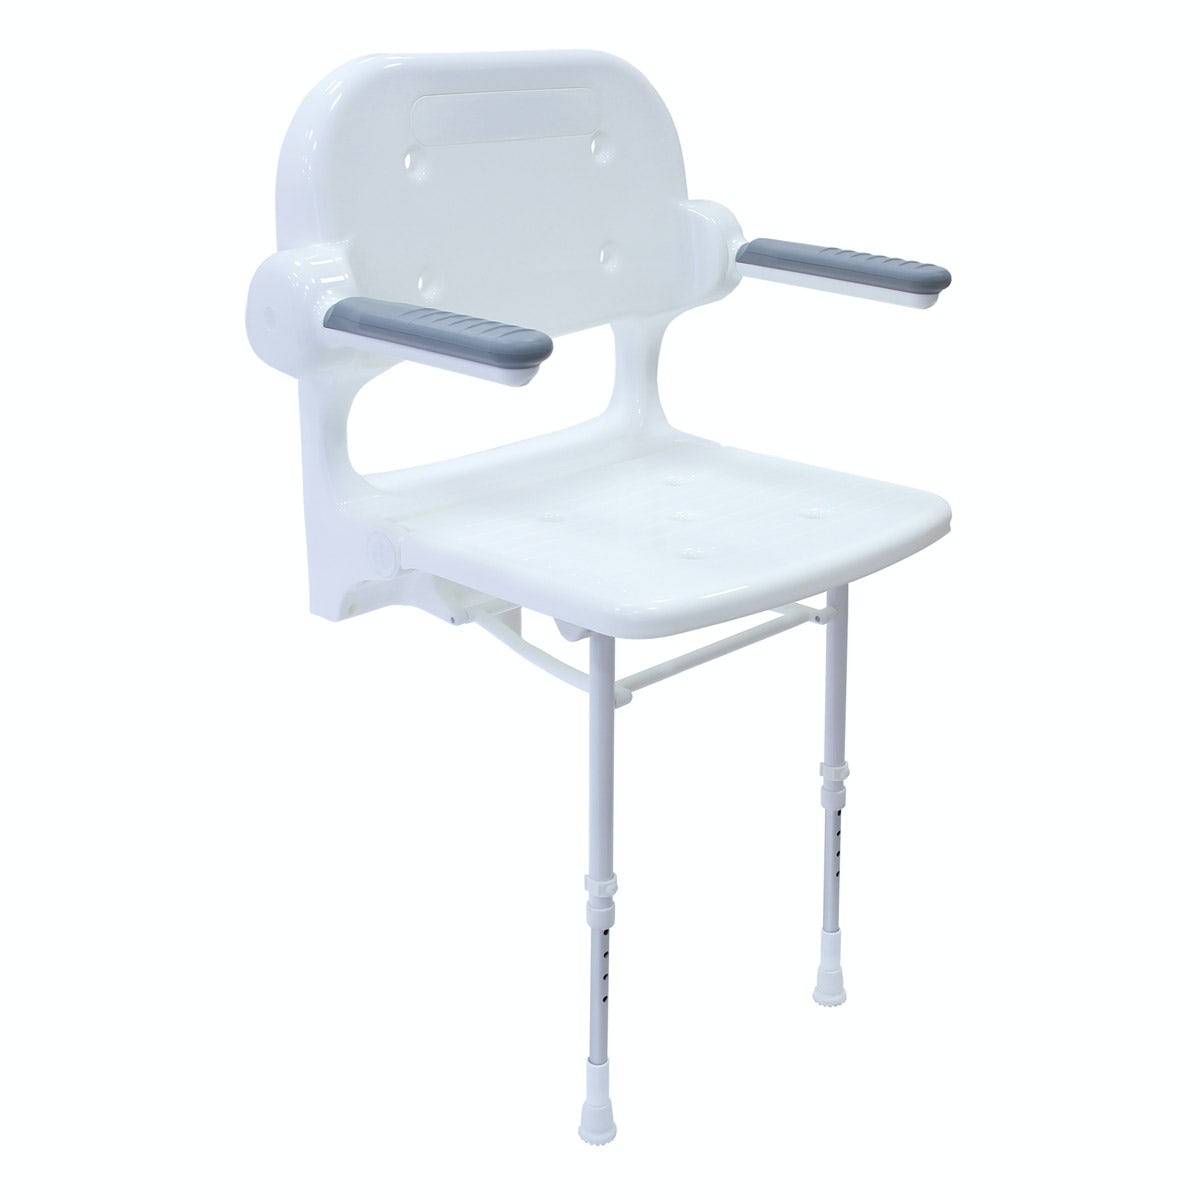 AKW 2000 series folding shower seat with back and arms - Sold by Victoria Plum